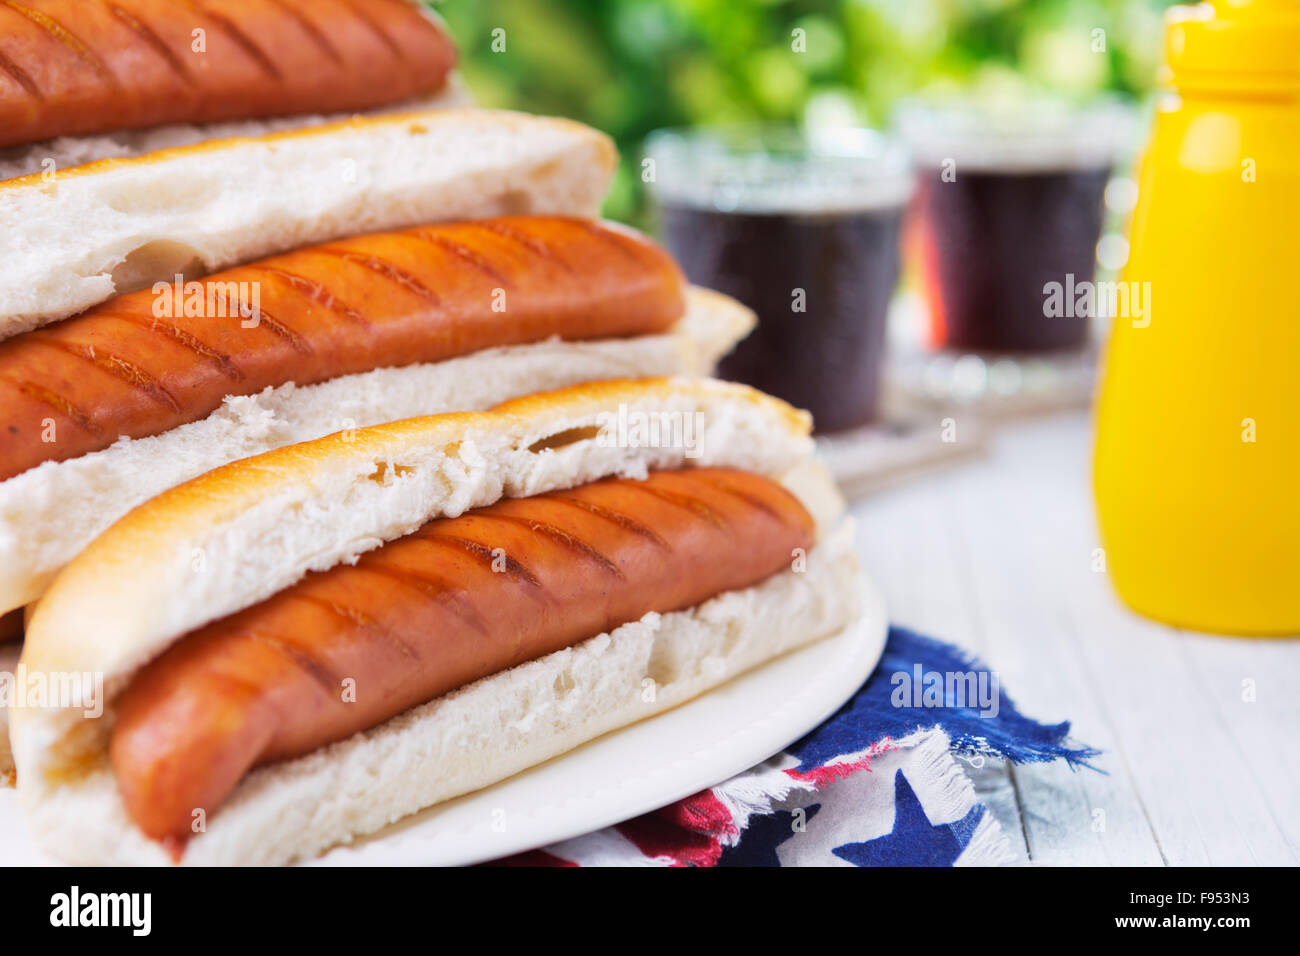 Tasty hot dogs on an outdoor table. - Stock Image